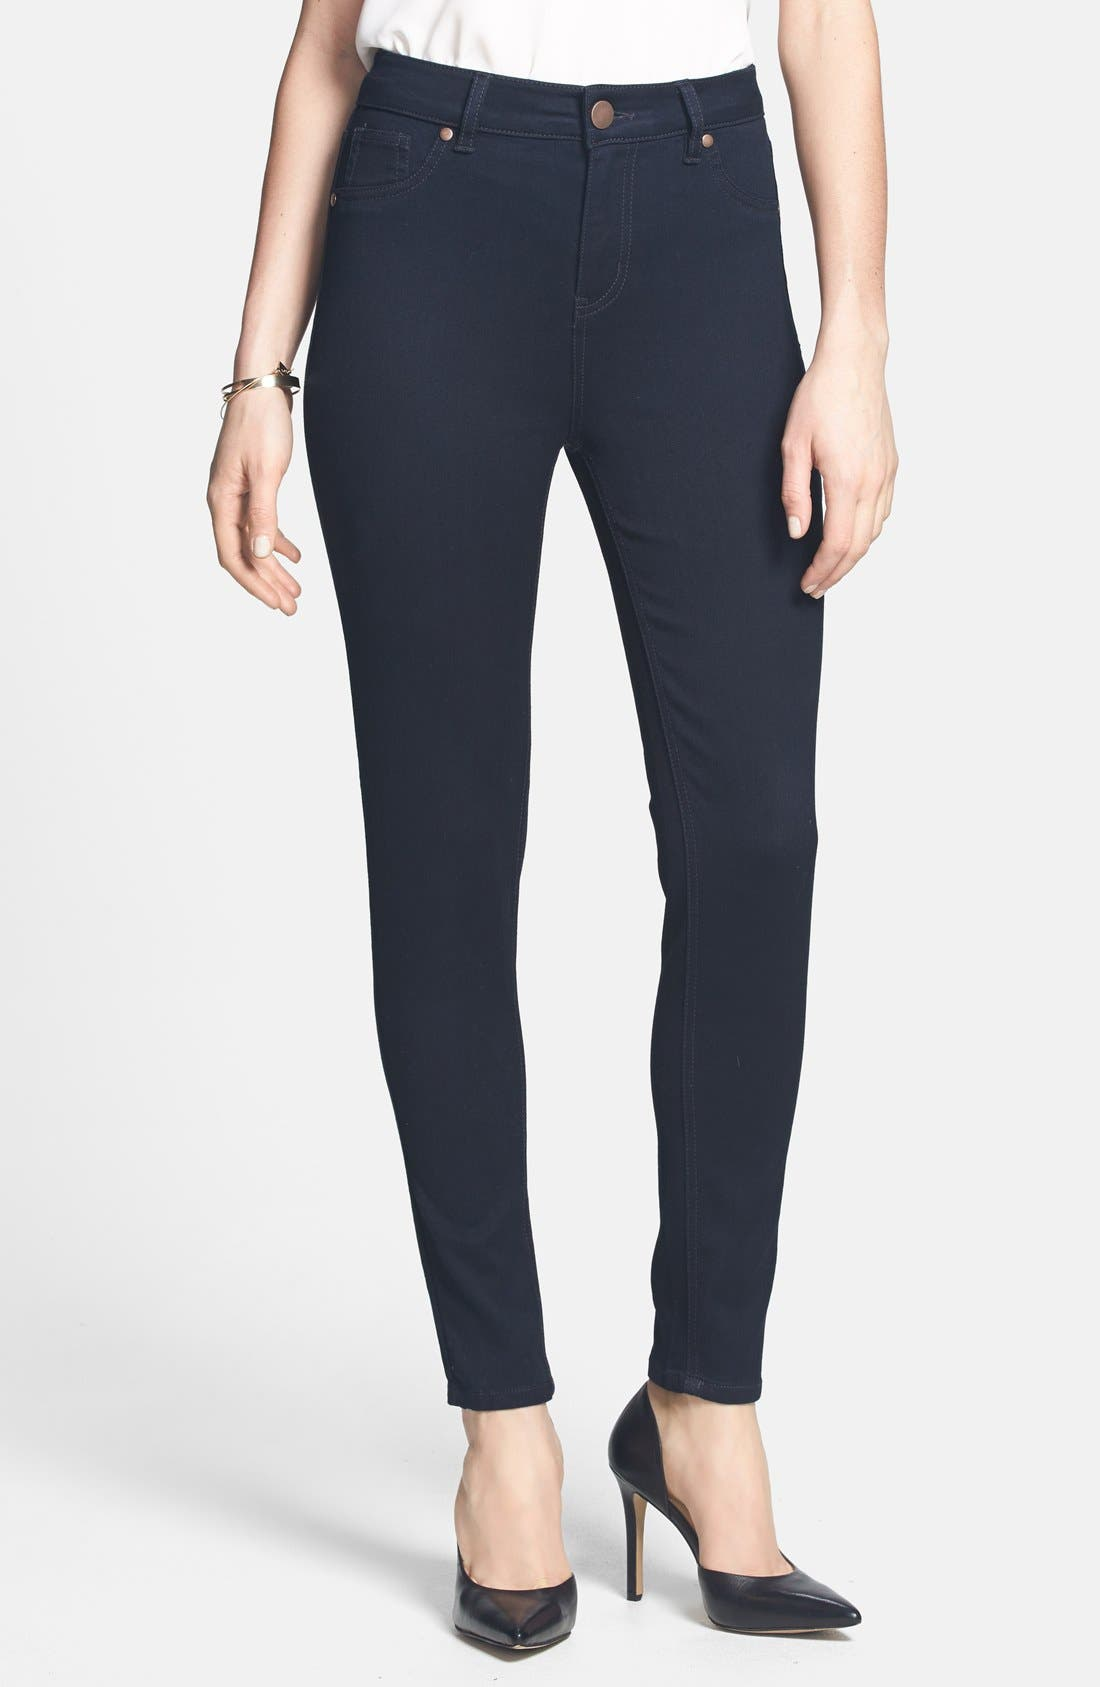 Alternate Image 1 Selected - Fire 'The 10' High Waist Skinny Jeans (Dark Wash) (Juniors) (Online Only)